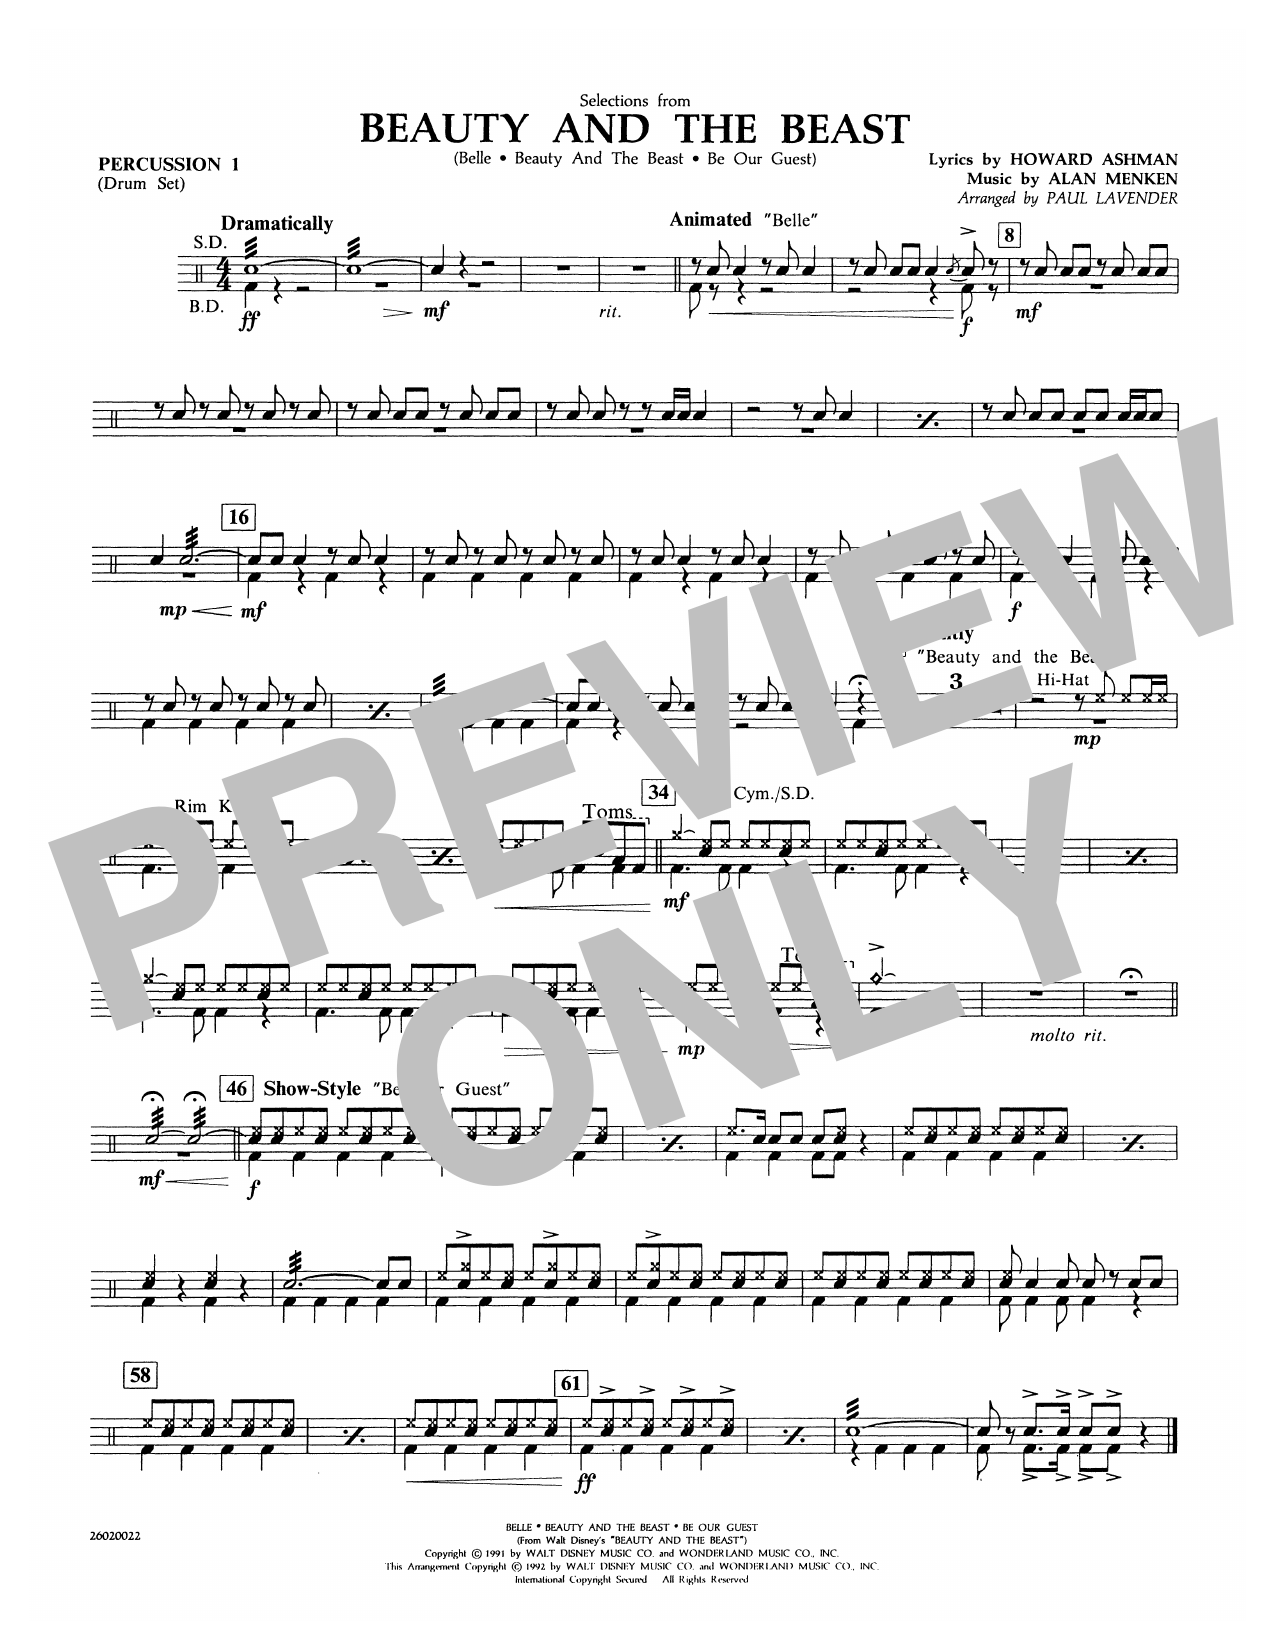 Paul Lavender Selections from Beauty and the Beast - Percussion 1 sheet music notes and chords. Download Printable PDF.